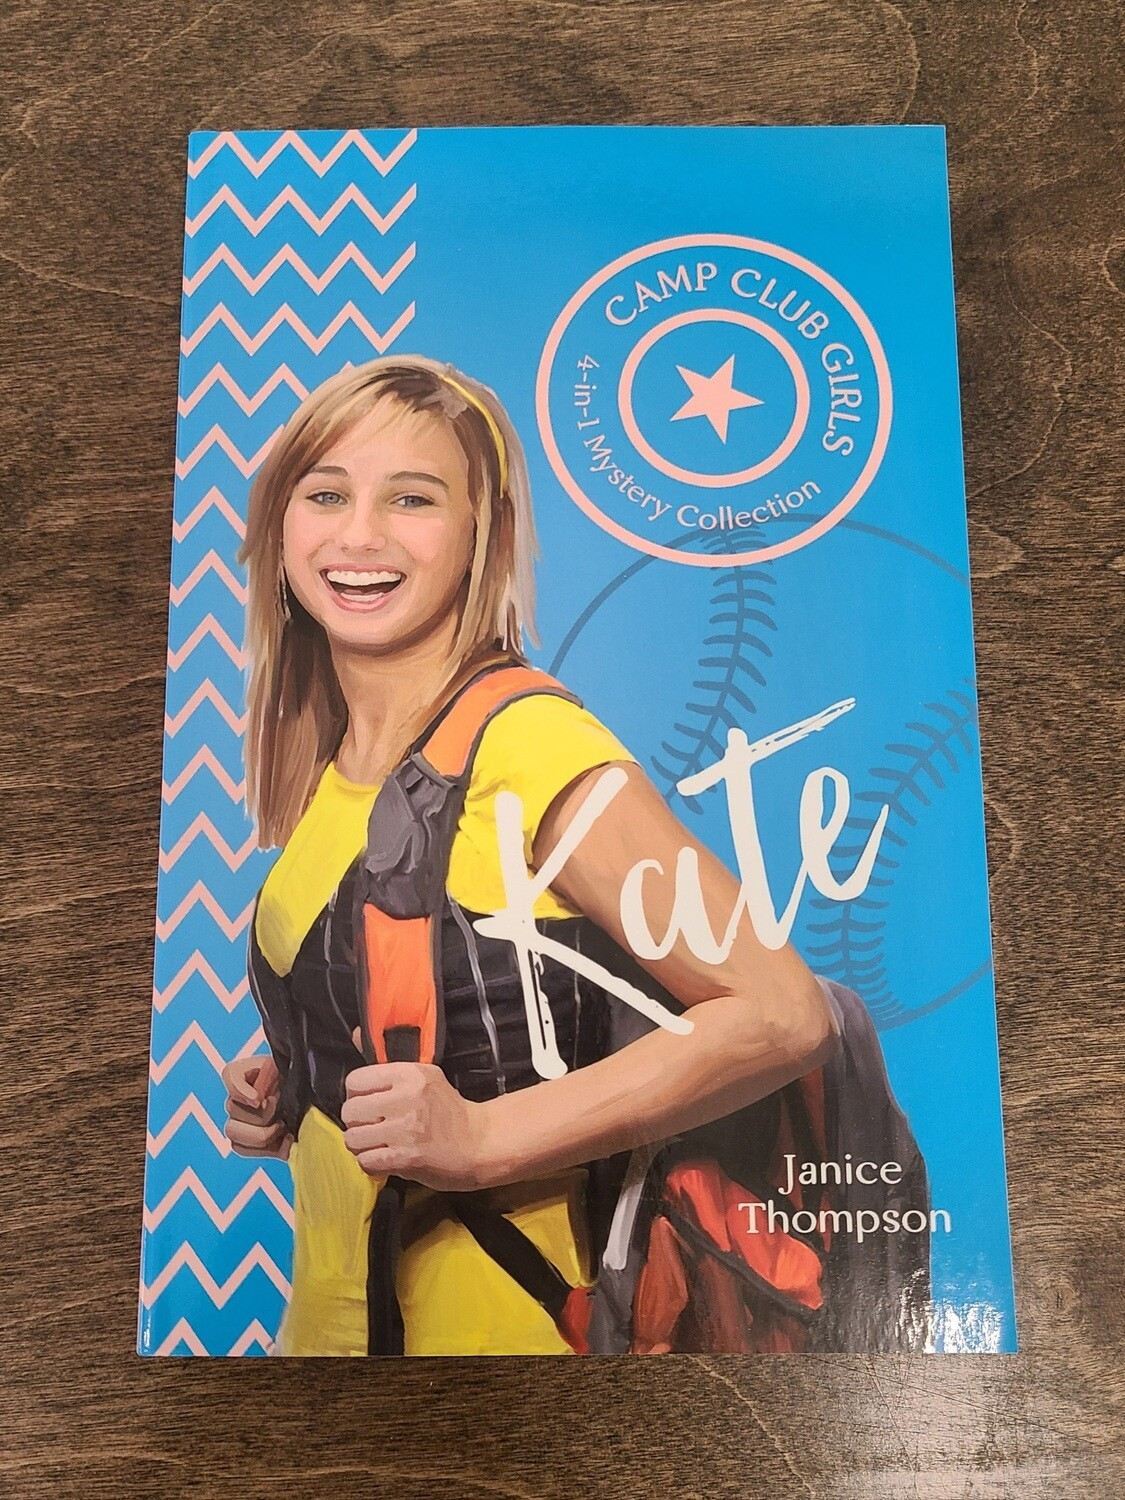 Camp Club Girls: Kate by Janice Thompson